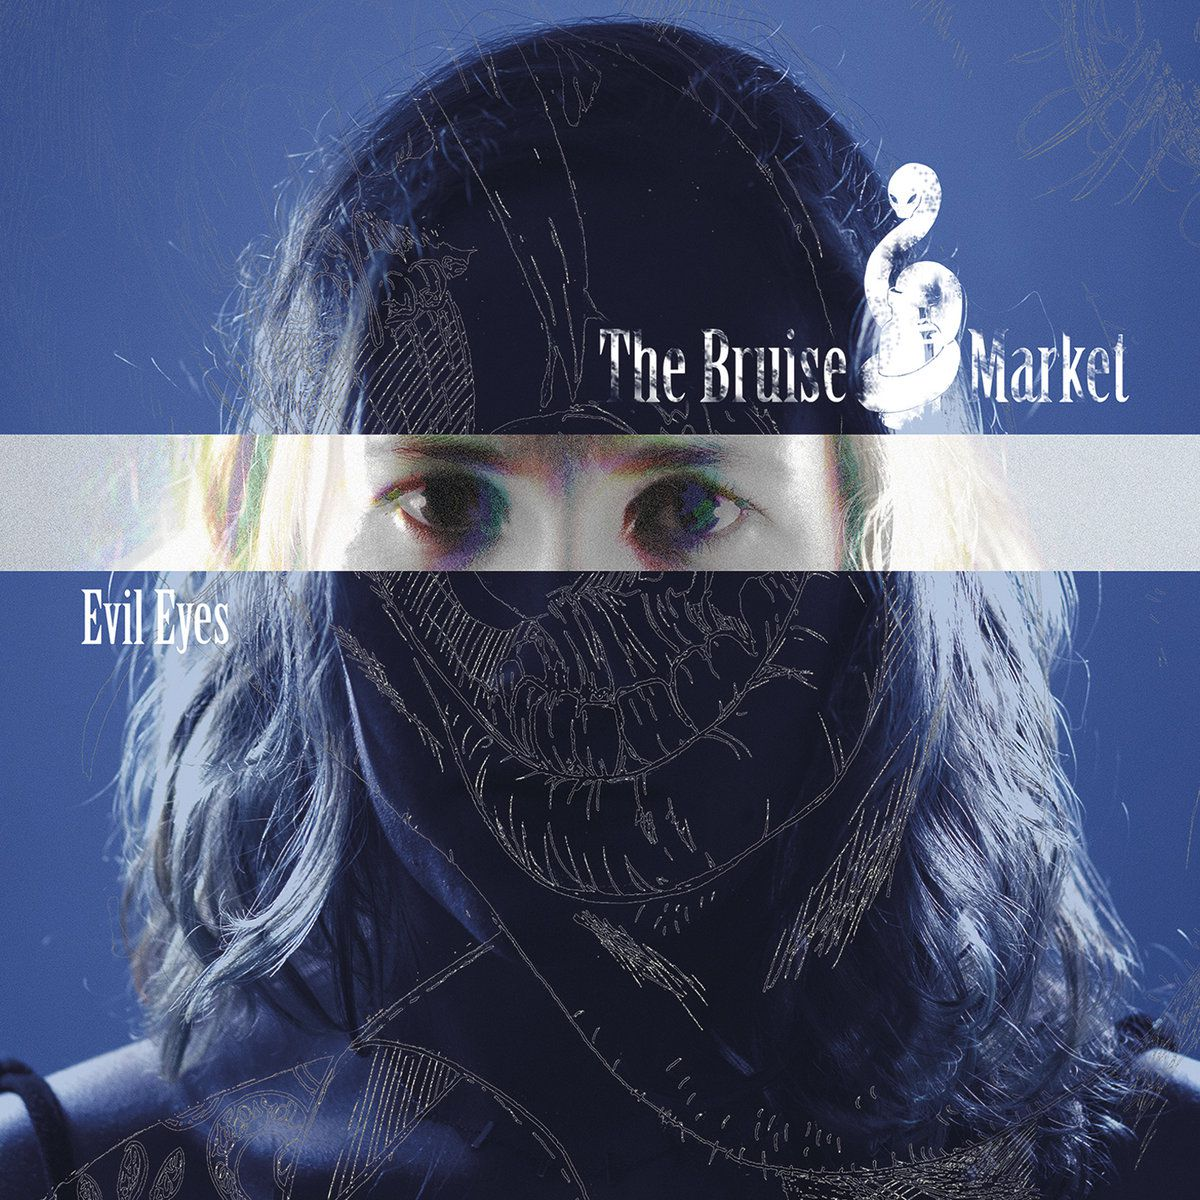 [INTERVIEW] THE BRUISE MARKET